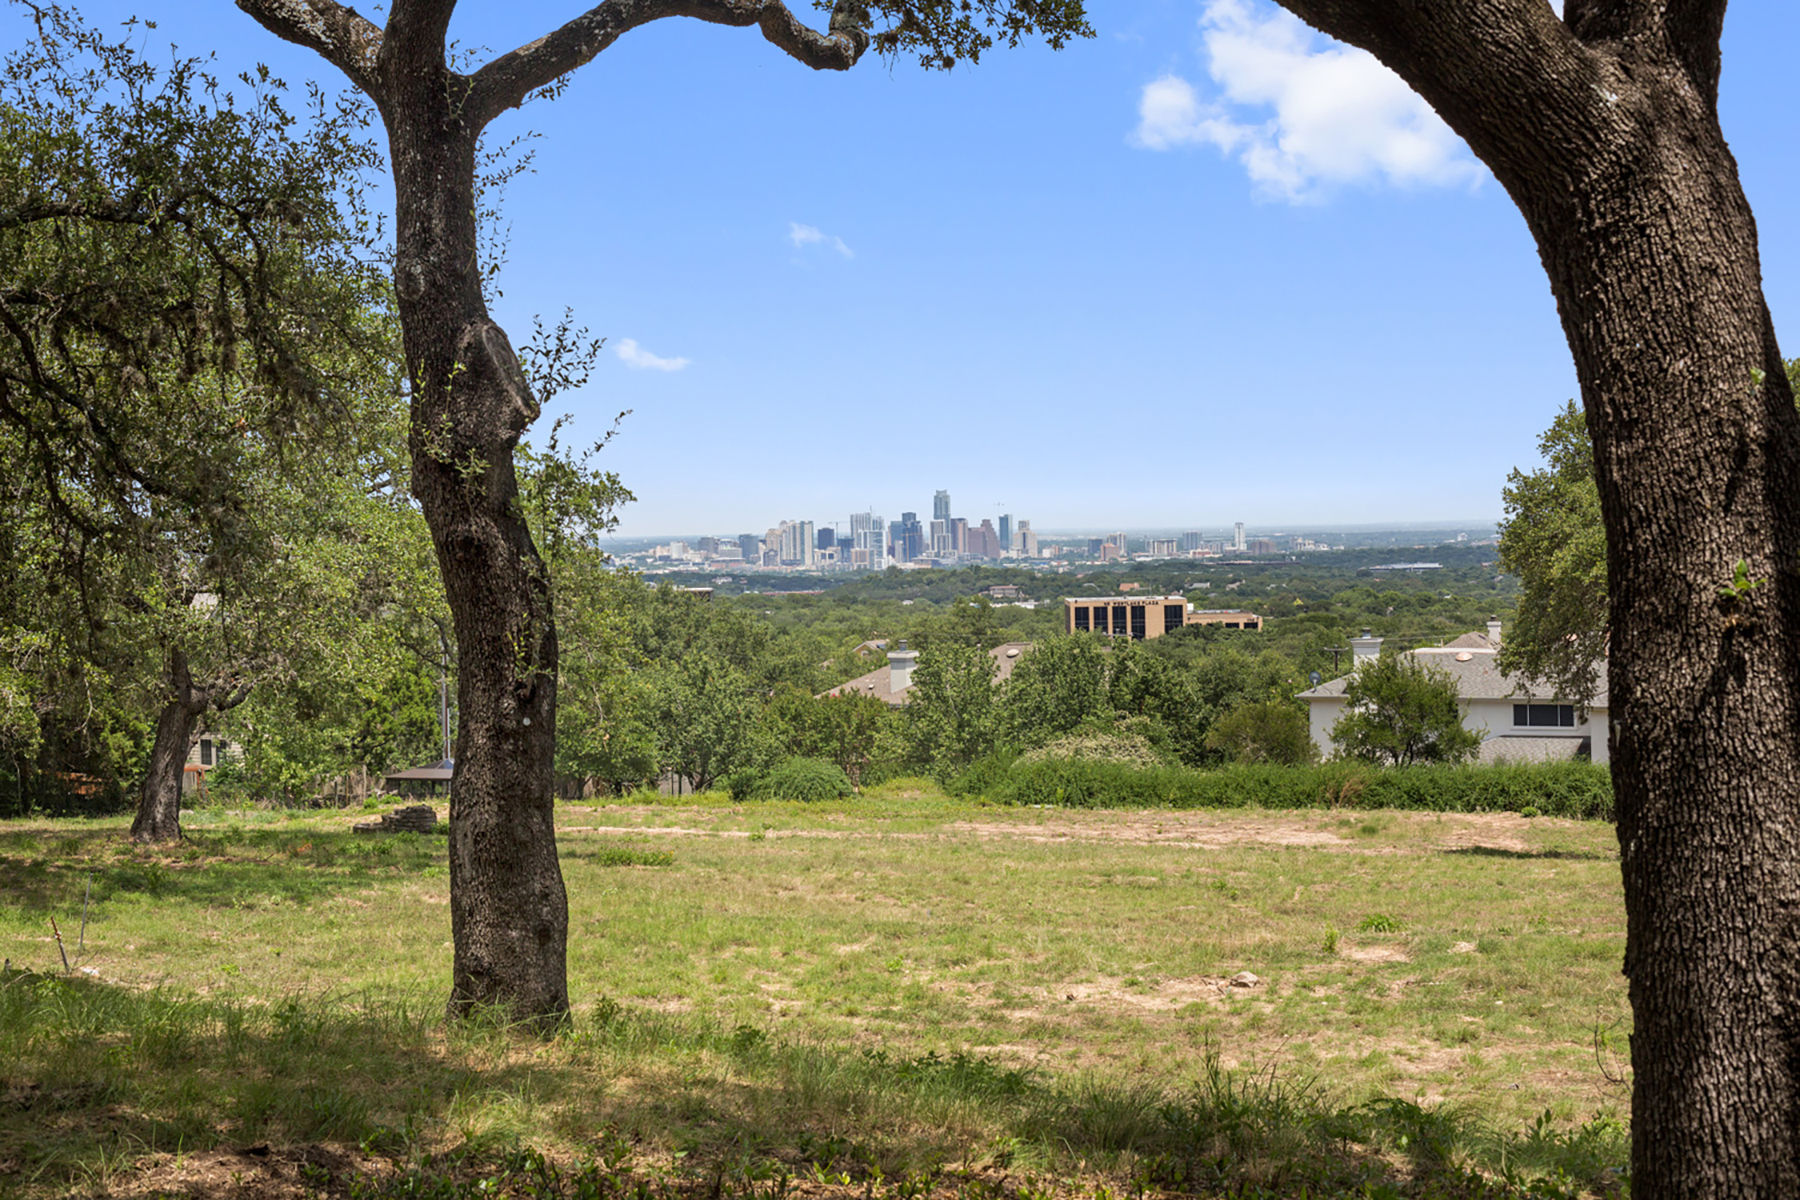 Land for Sale at 1758 Camp Craft Road, West Lake Hills, TX 78746 1758 Camp Craft Road West Lake Hills, Texas 78746 United States